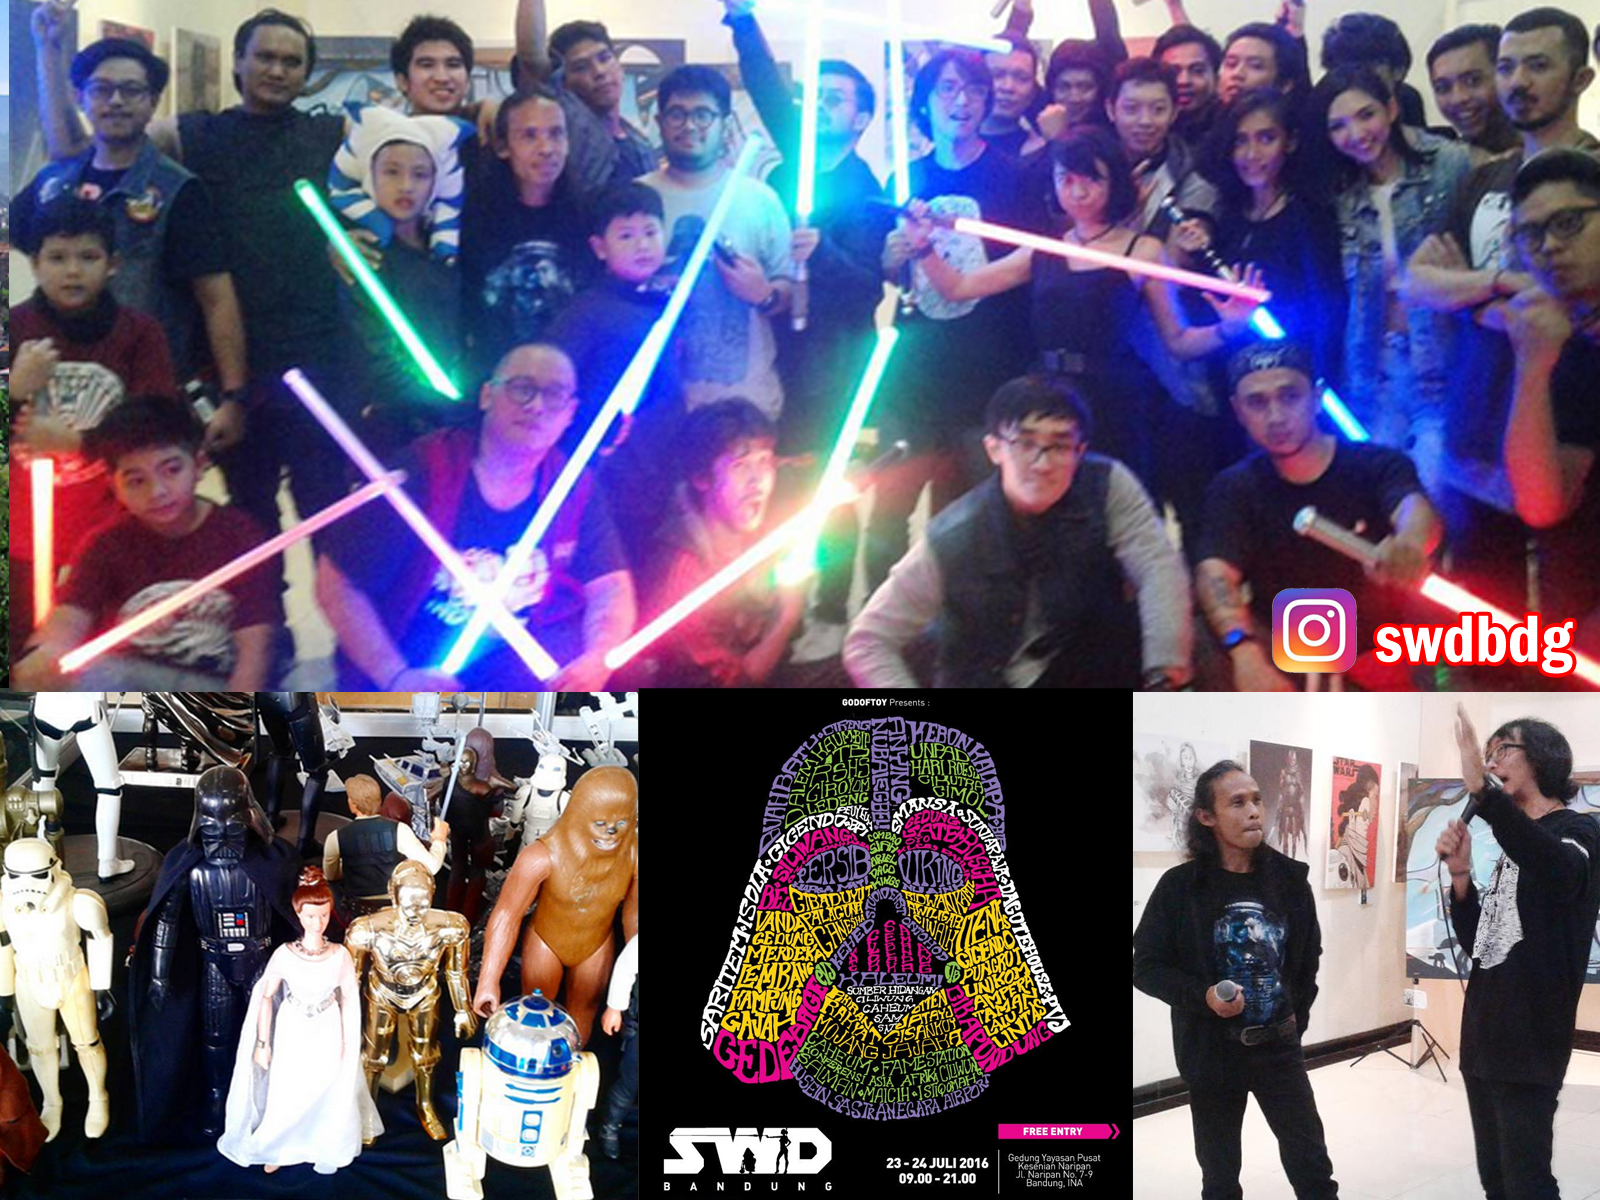 Space Wanderer Day Bandung SWDBDG 2016 di Gedung YPK